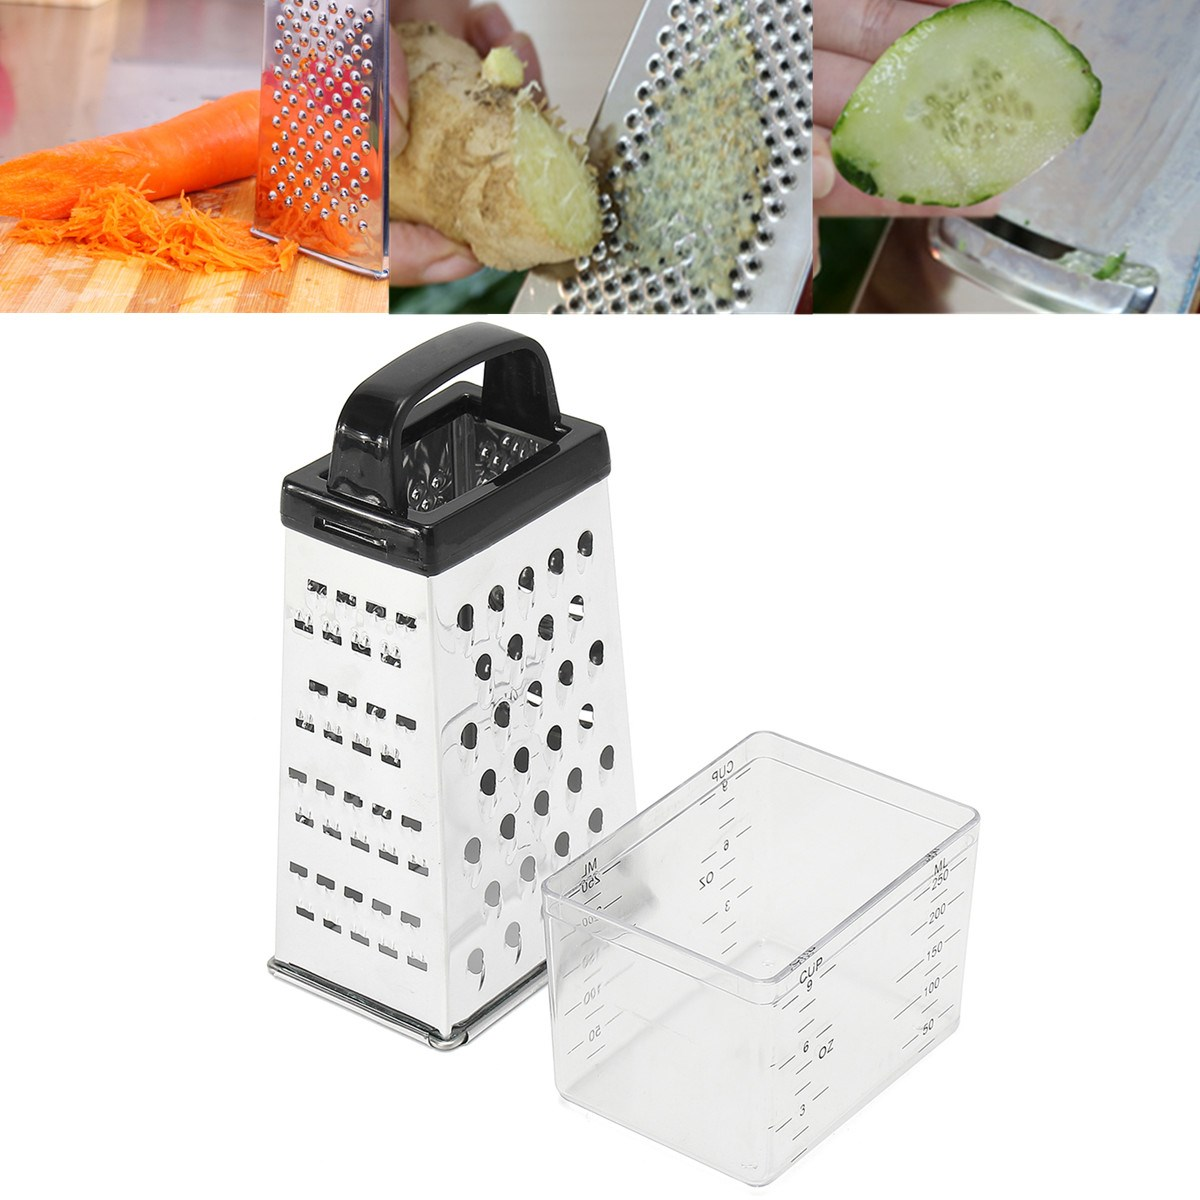 Kitchen Stainless Steel 4 Sided Blades Cheese Vegetables Grater Carrot Cucumber Slicer Cutter Box Container Black/White Random